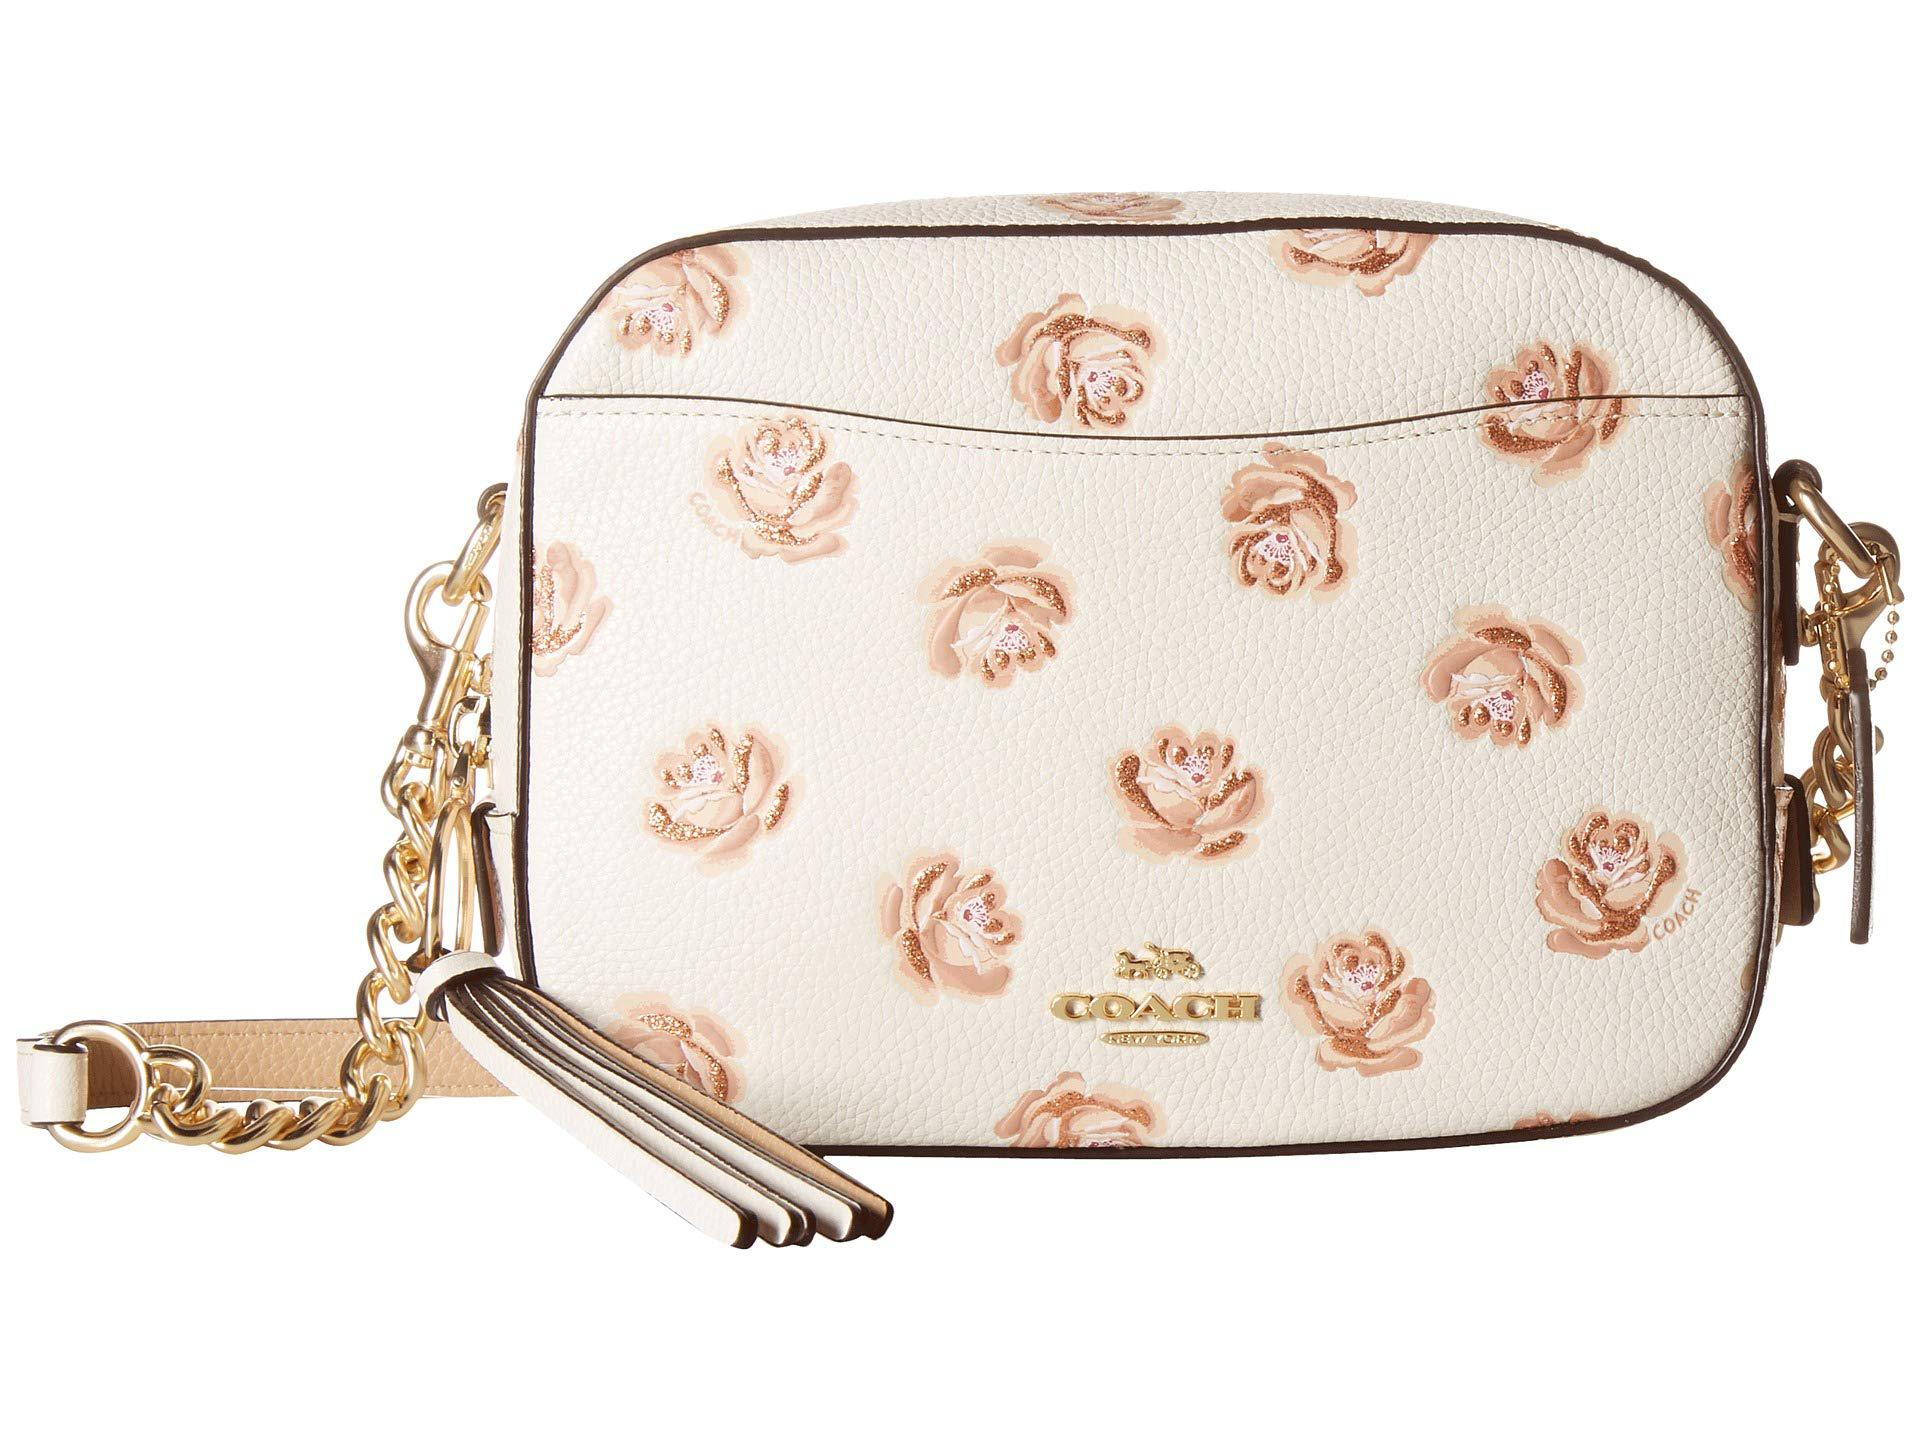 a7b4f3d0a68 Women's Camera Bag In Floral Printed Leather (sv/sky) Bags